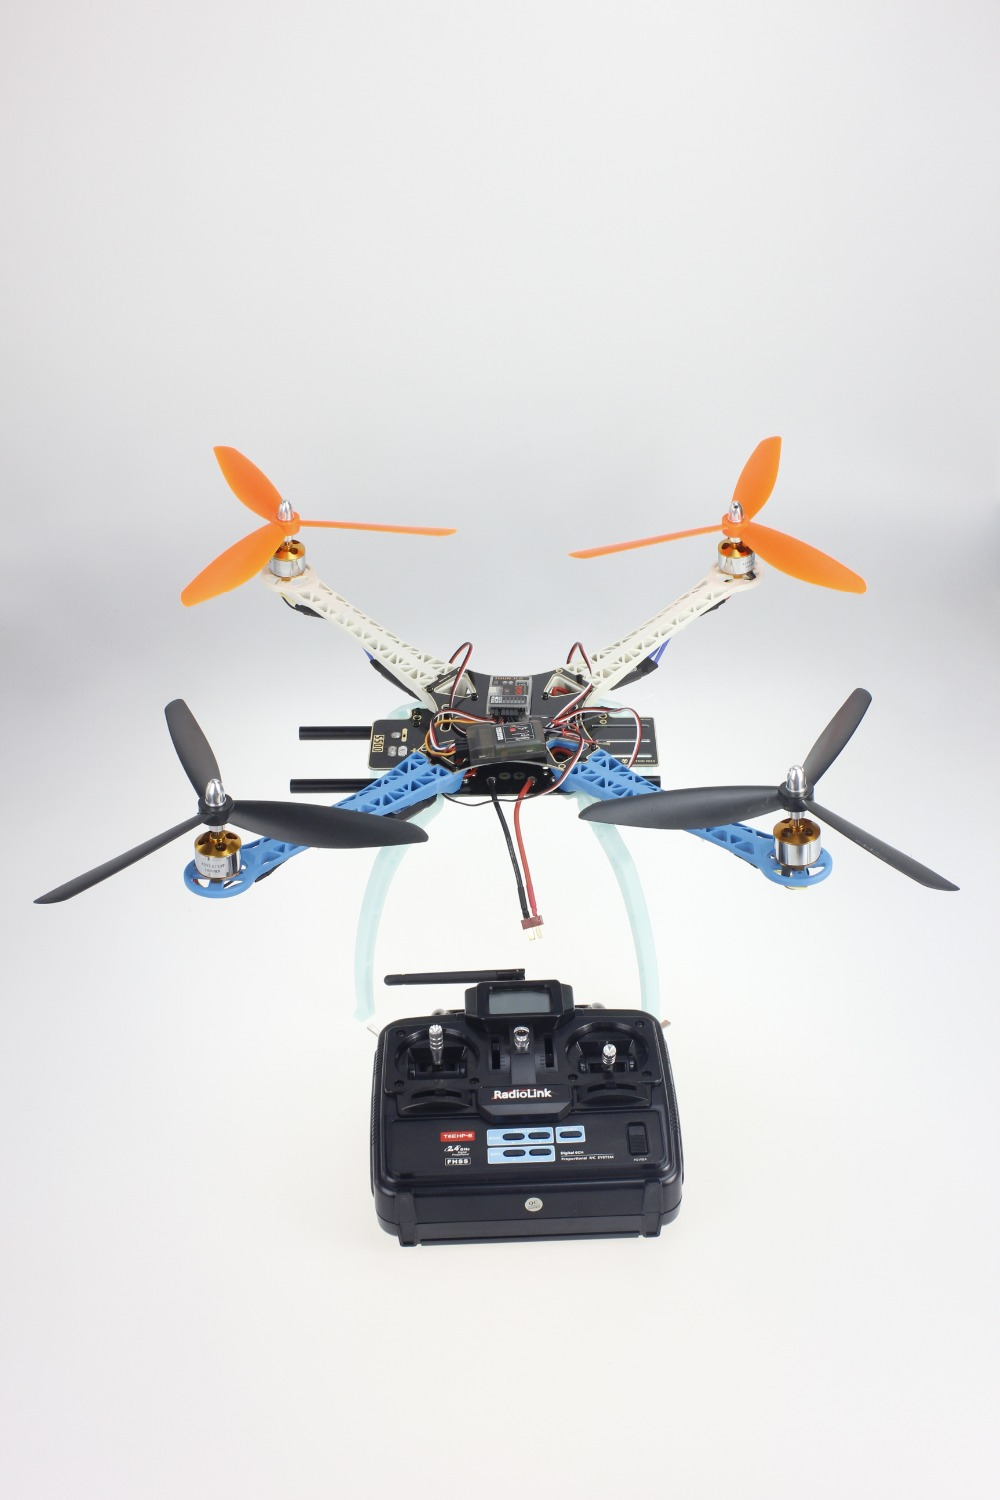 F08191-B DIY Drone Multicopter Upgraded Full Kit S500-PCB 1045 3-Propeller 4axle QuadCopter UFO RTF/ARF No Battery / Charger FS jmt diy drone f550 multi rotor full kit 1045 3 props 6 axle rc multi hexac